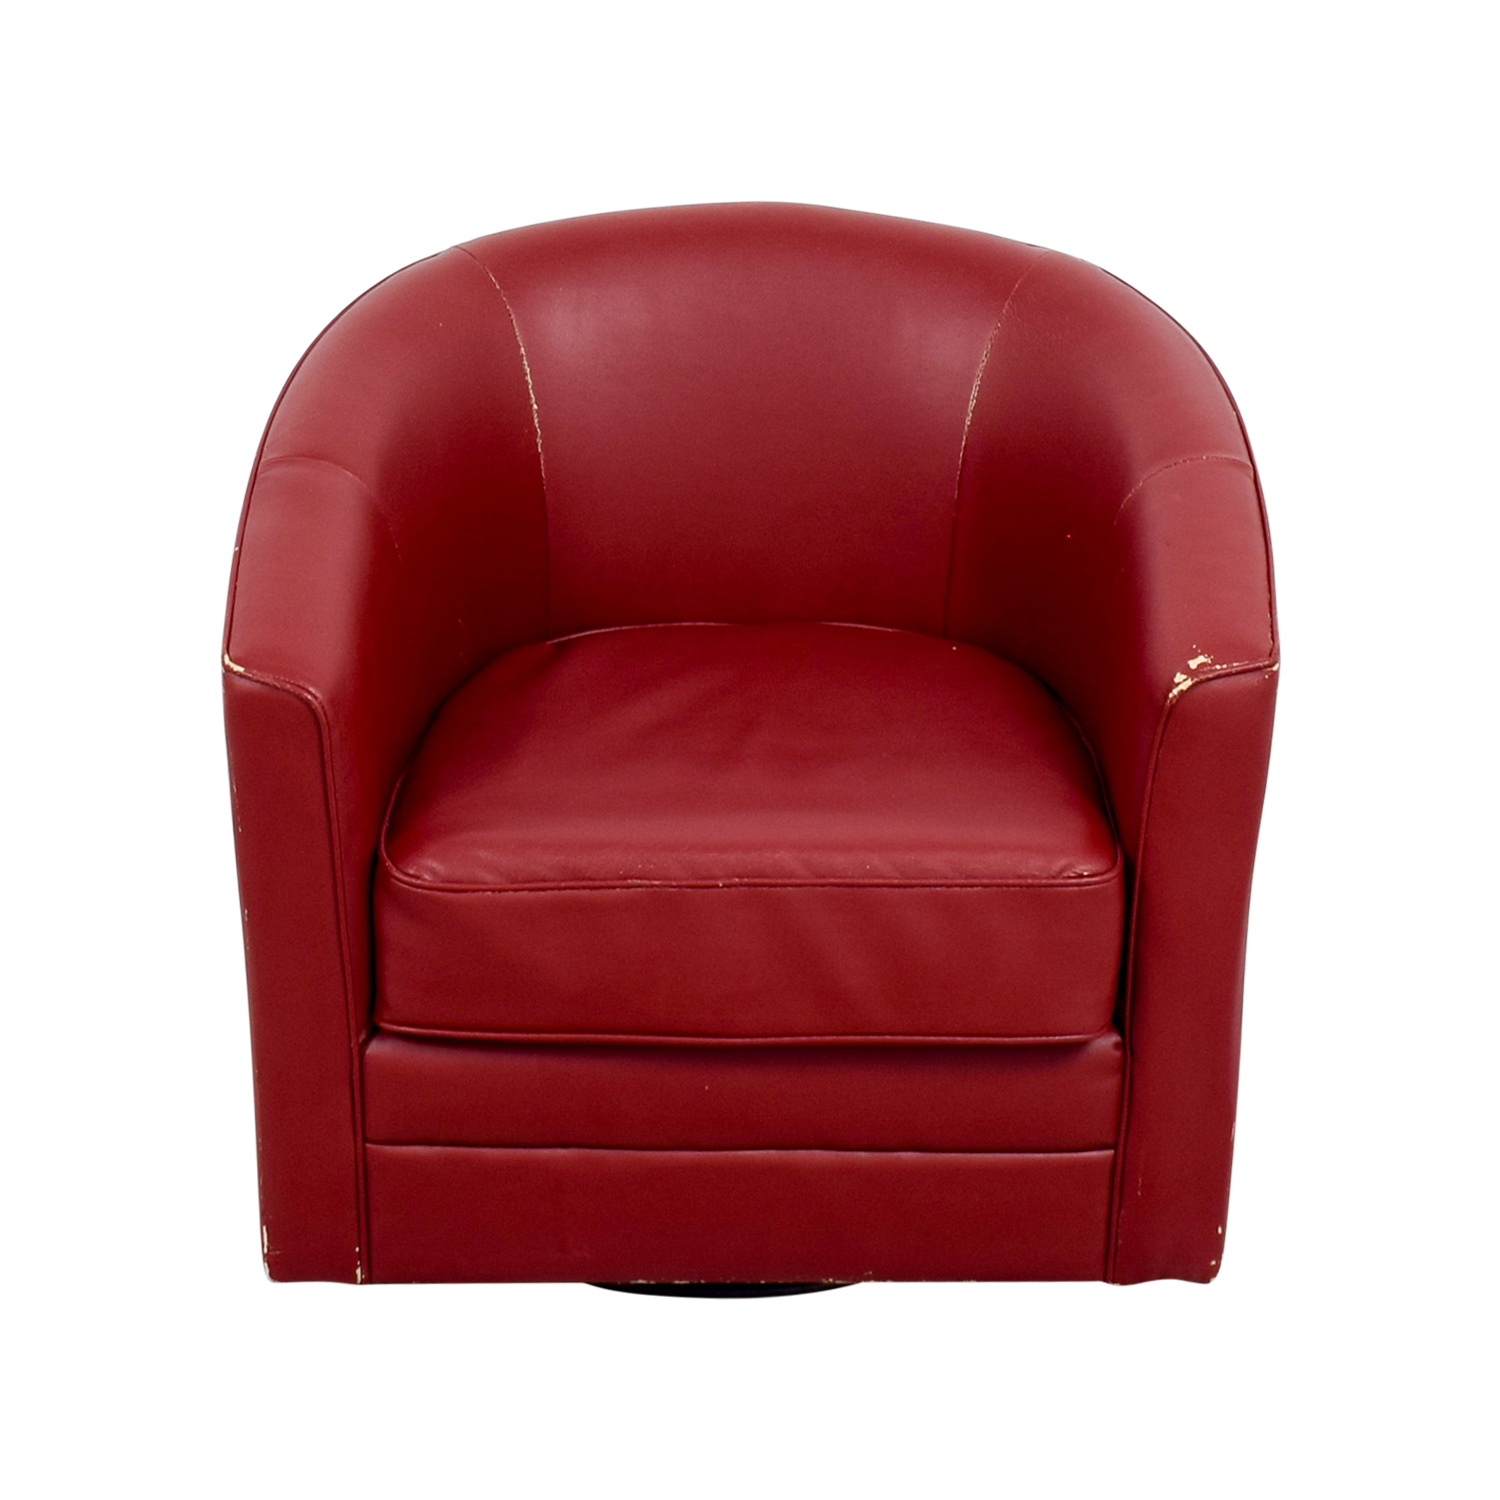 ... Bobs Furniture Bobs Furniture Red Leather Chair Accent Chairs ...